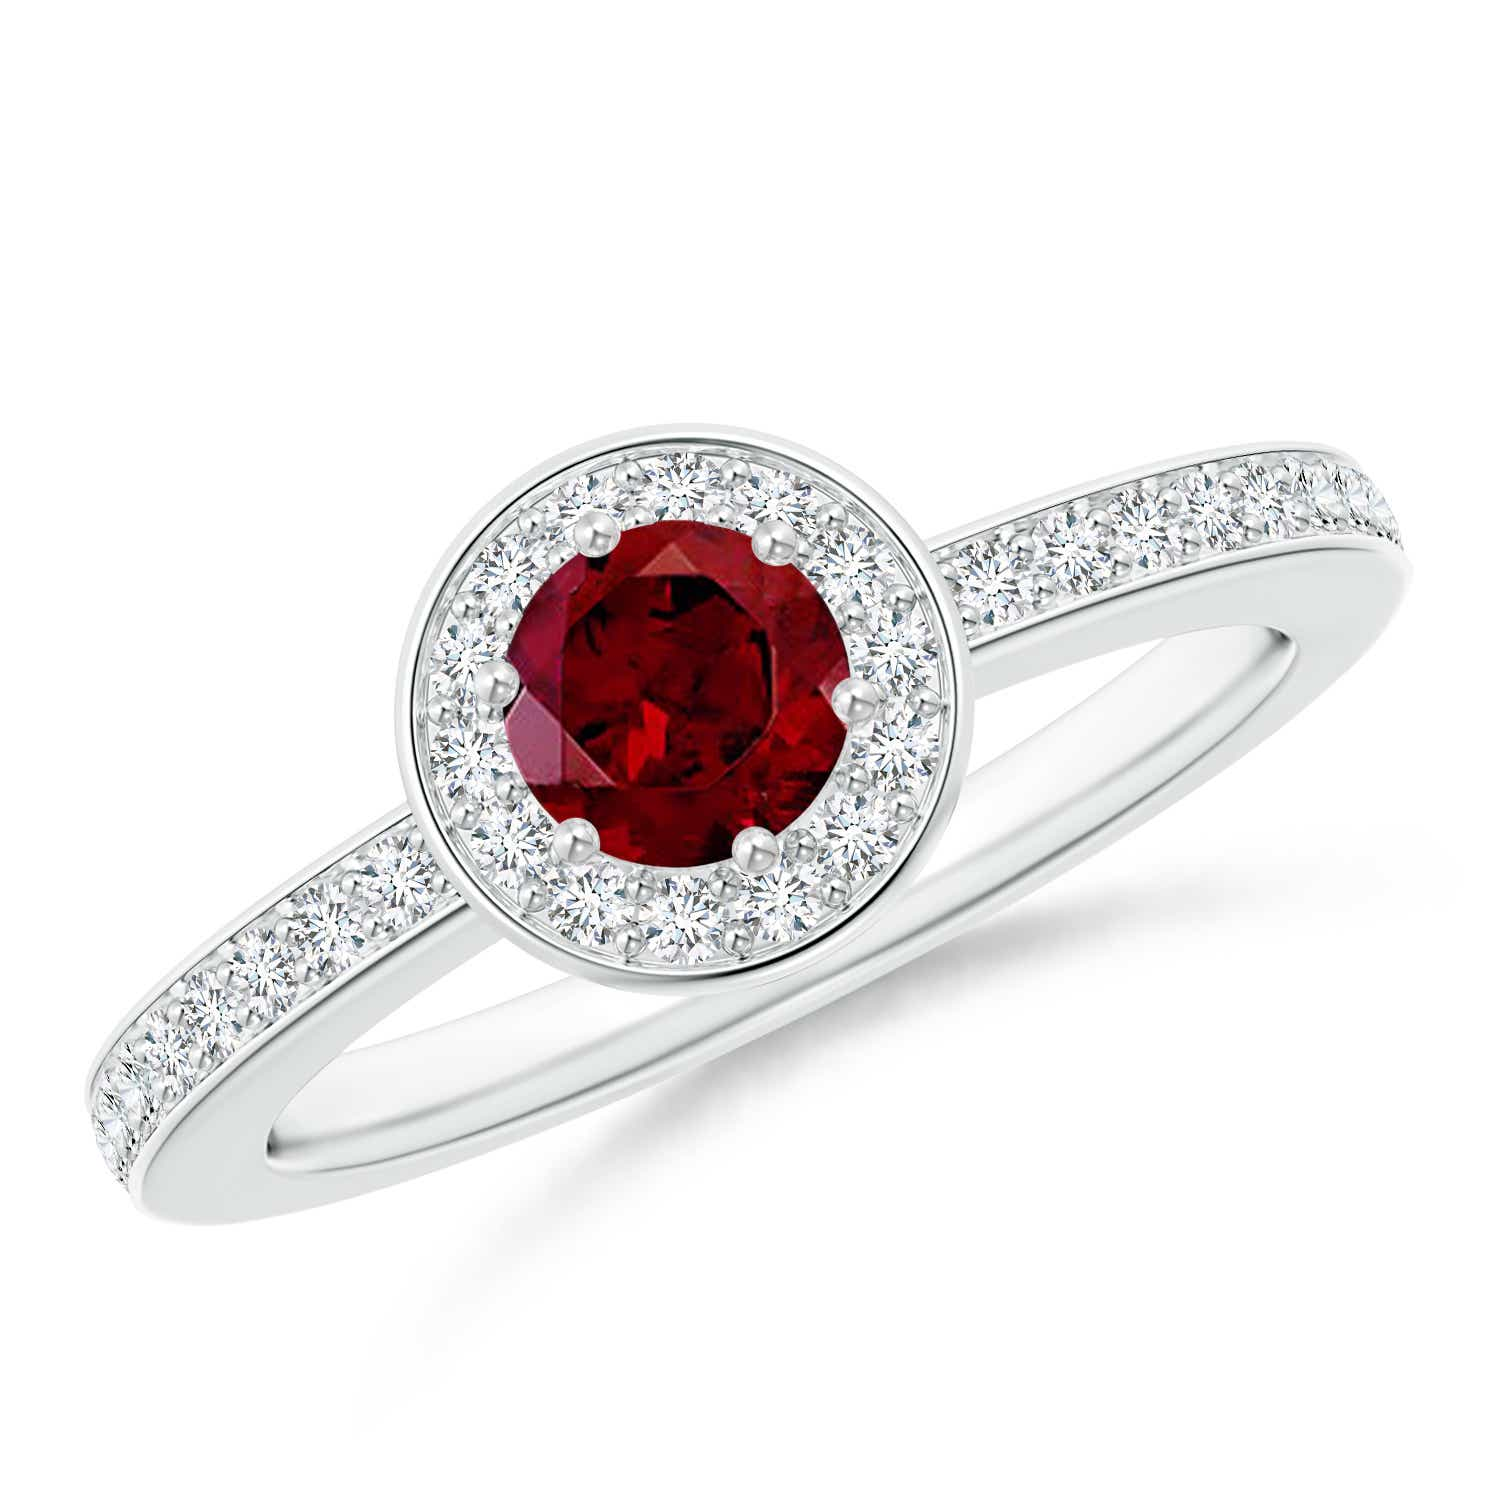 Round Garnet Halo Ring with Diamond Accent - Angara.com